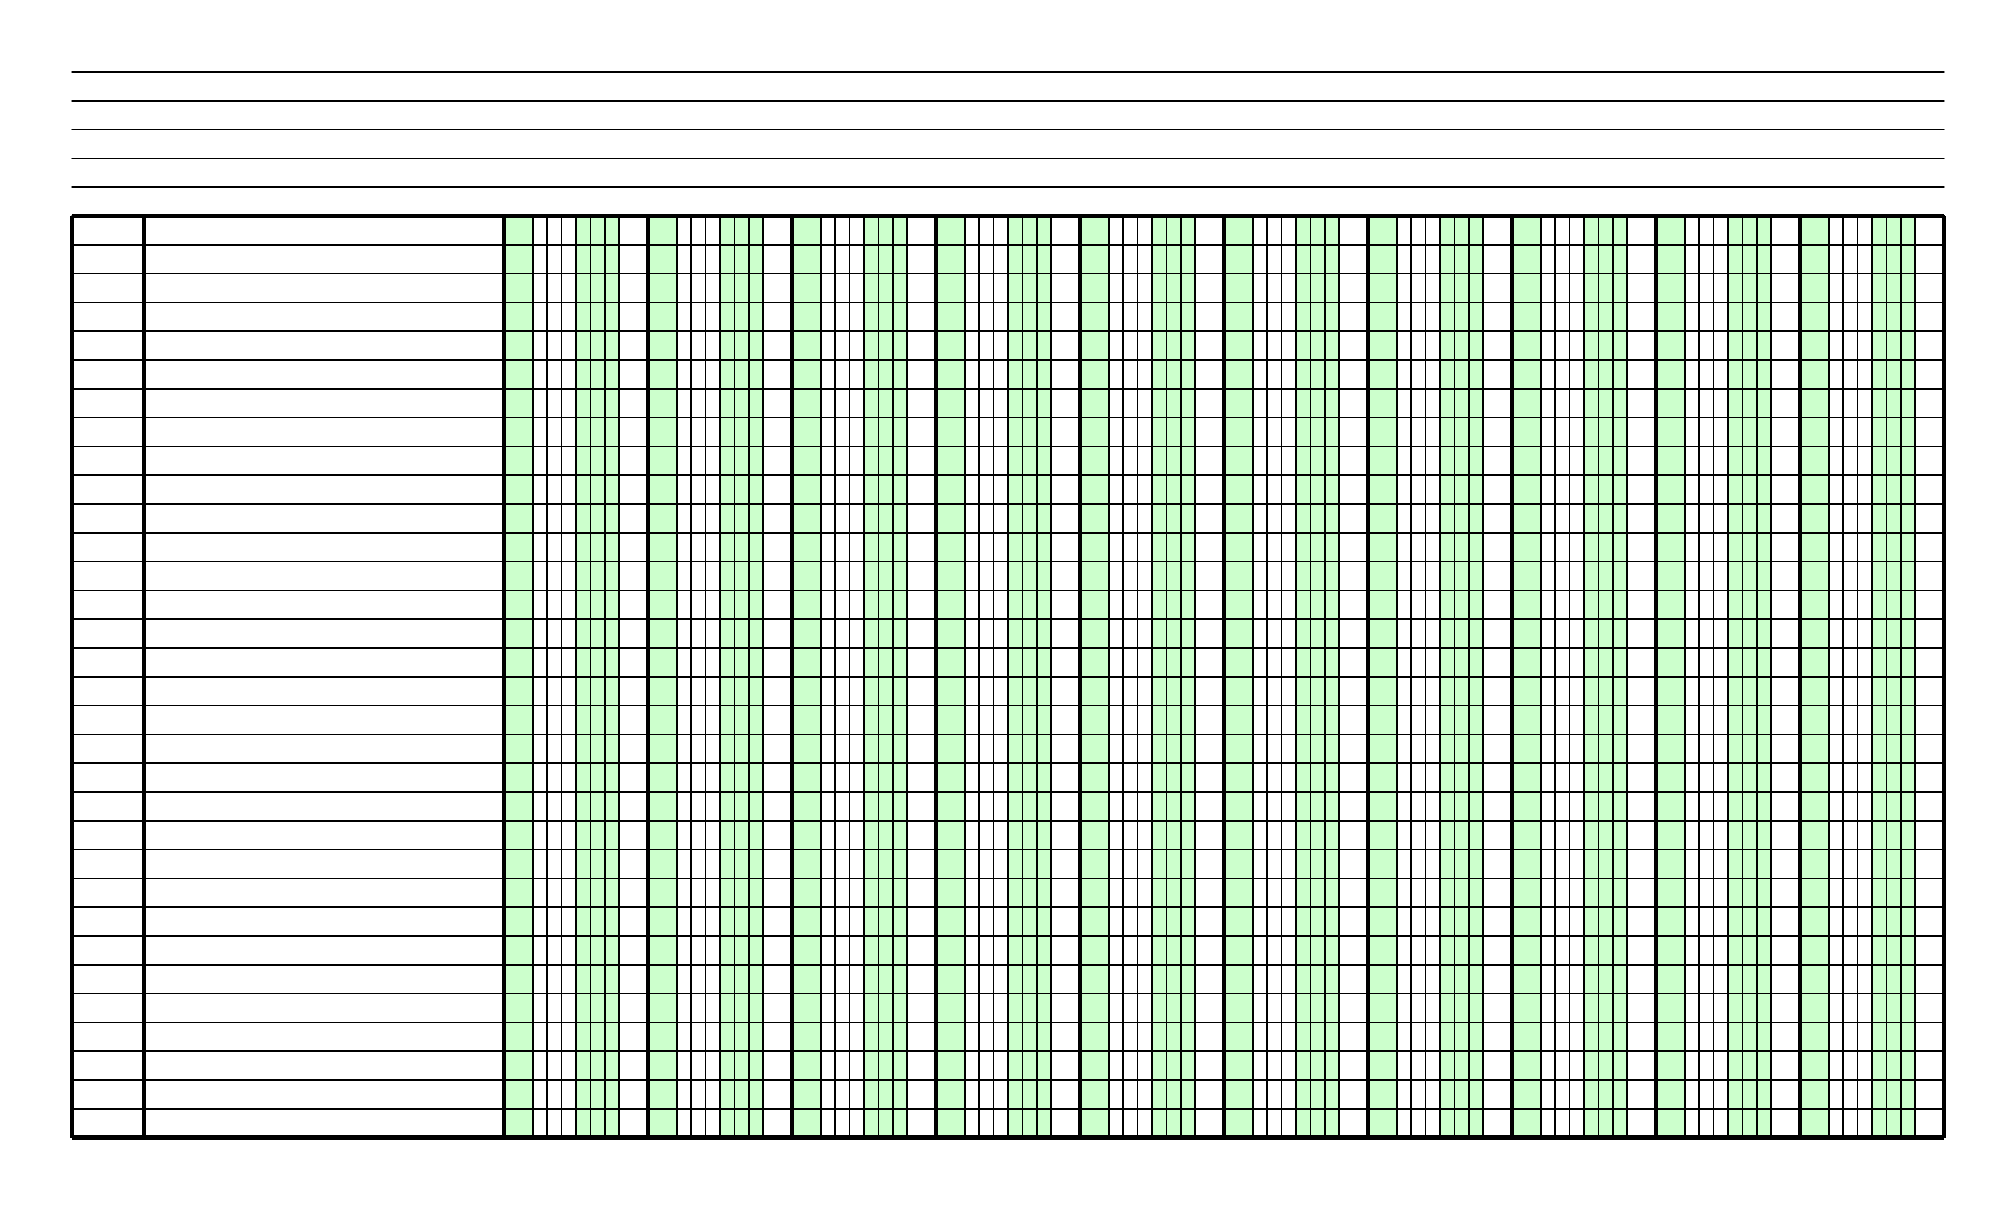 Blank Columnar Paper With Two Columns On Legal Sized Paper In Portrait Orientation Free Download